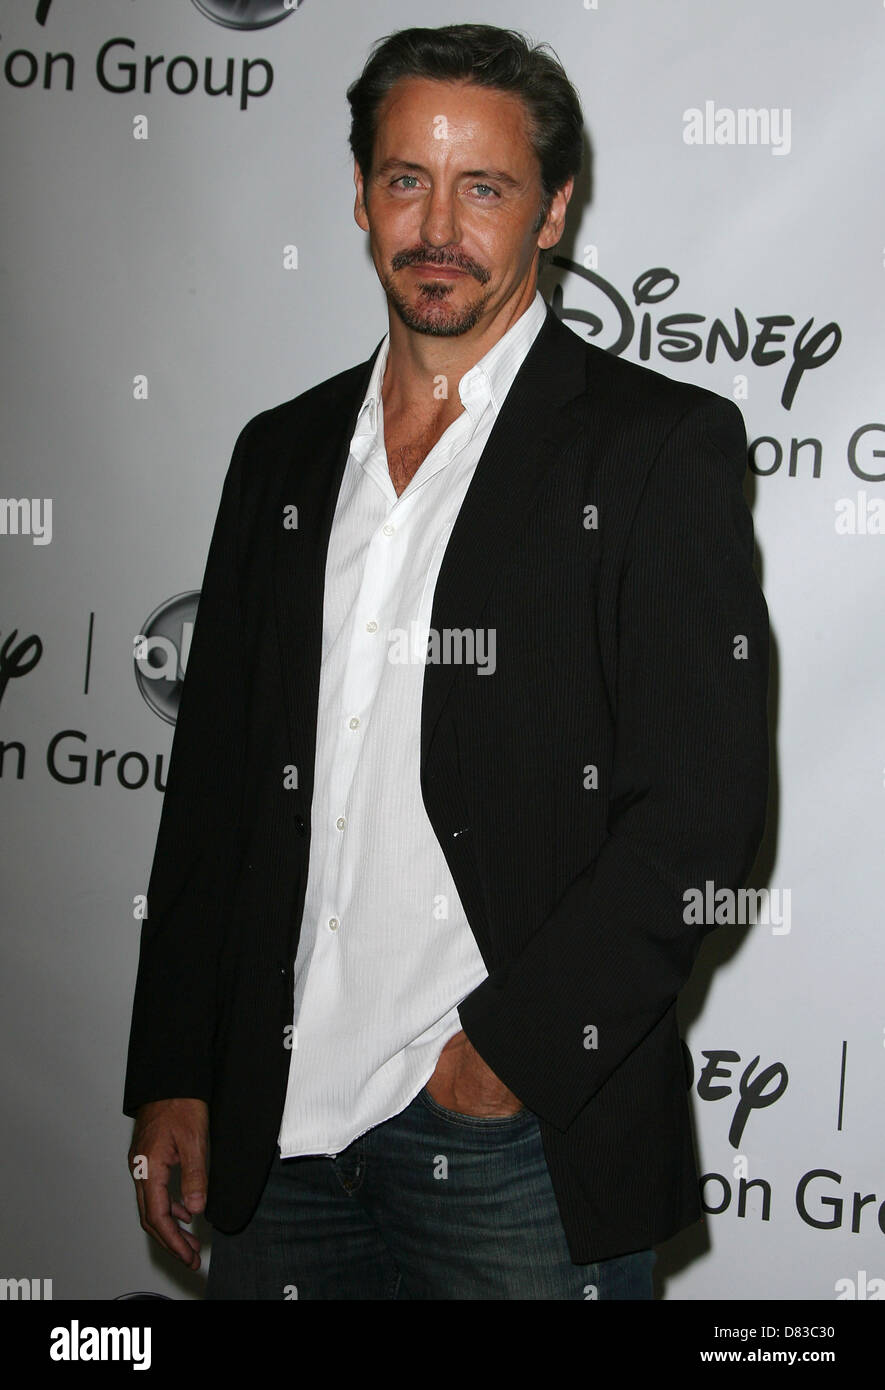 Charles Mesure Disney Abc Television Group Host Summer Press Tour Stock Photo Alamy